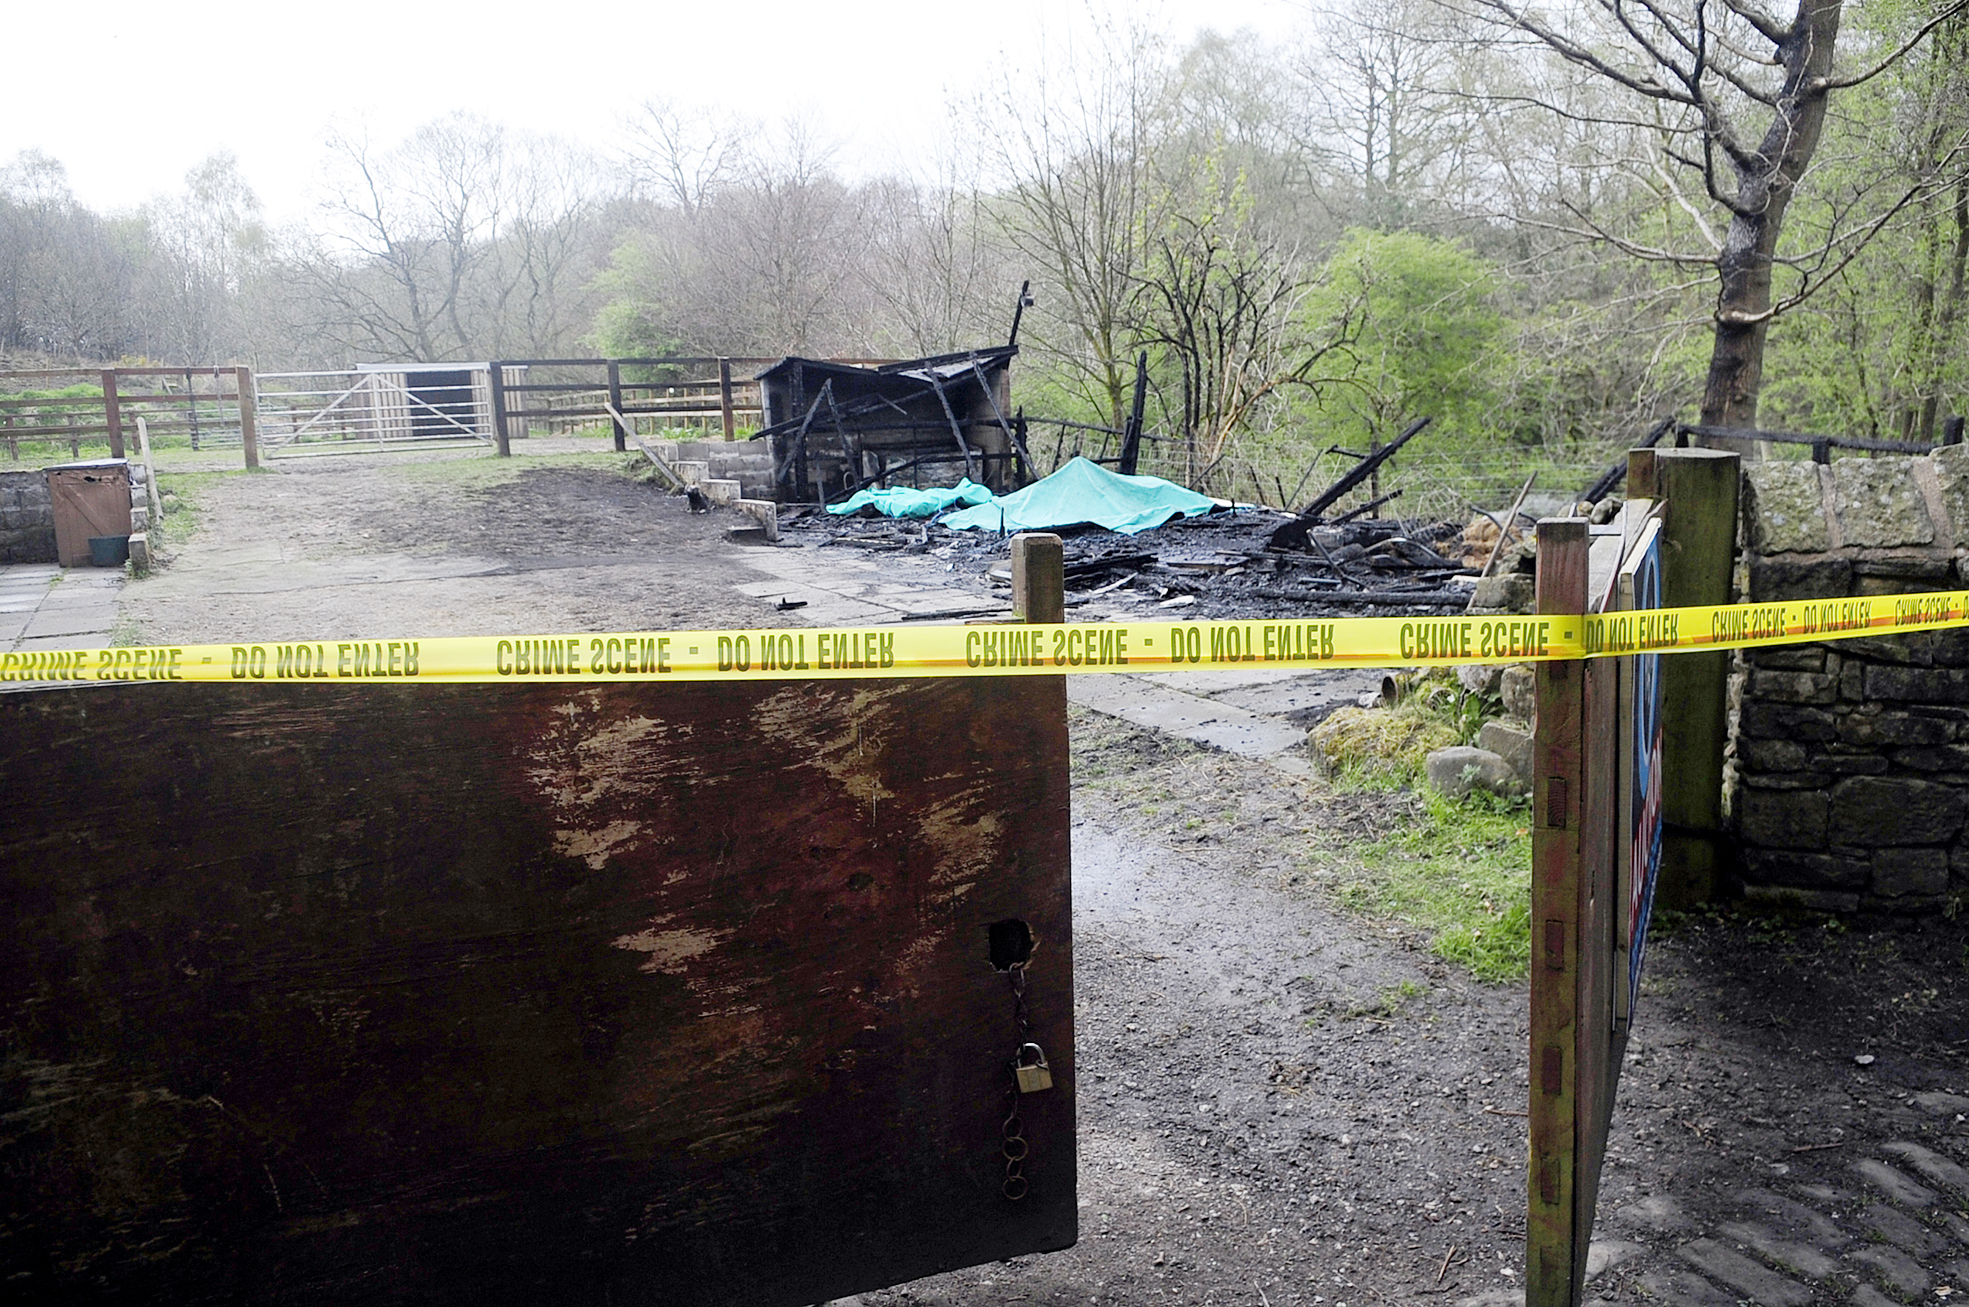 UPDATED: Horses killed in stable arson attack